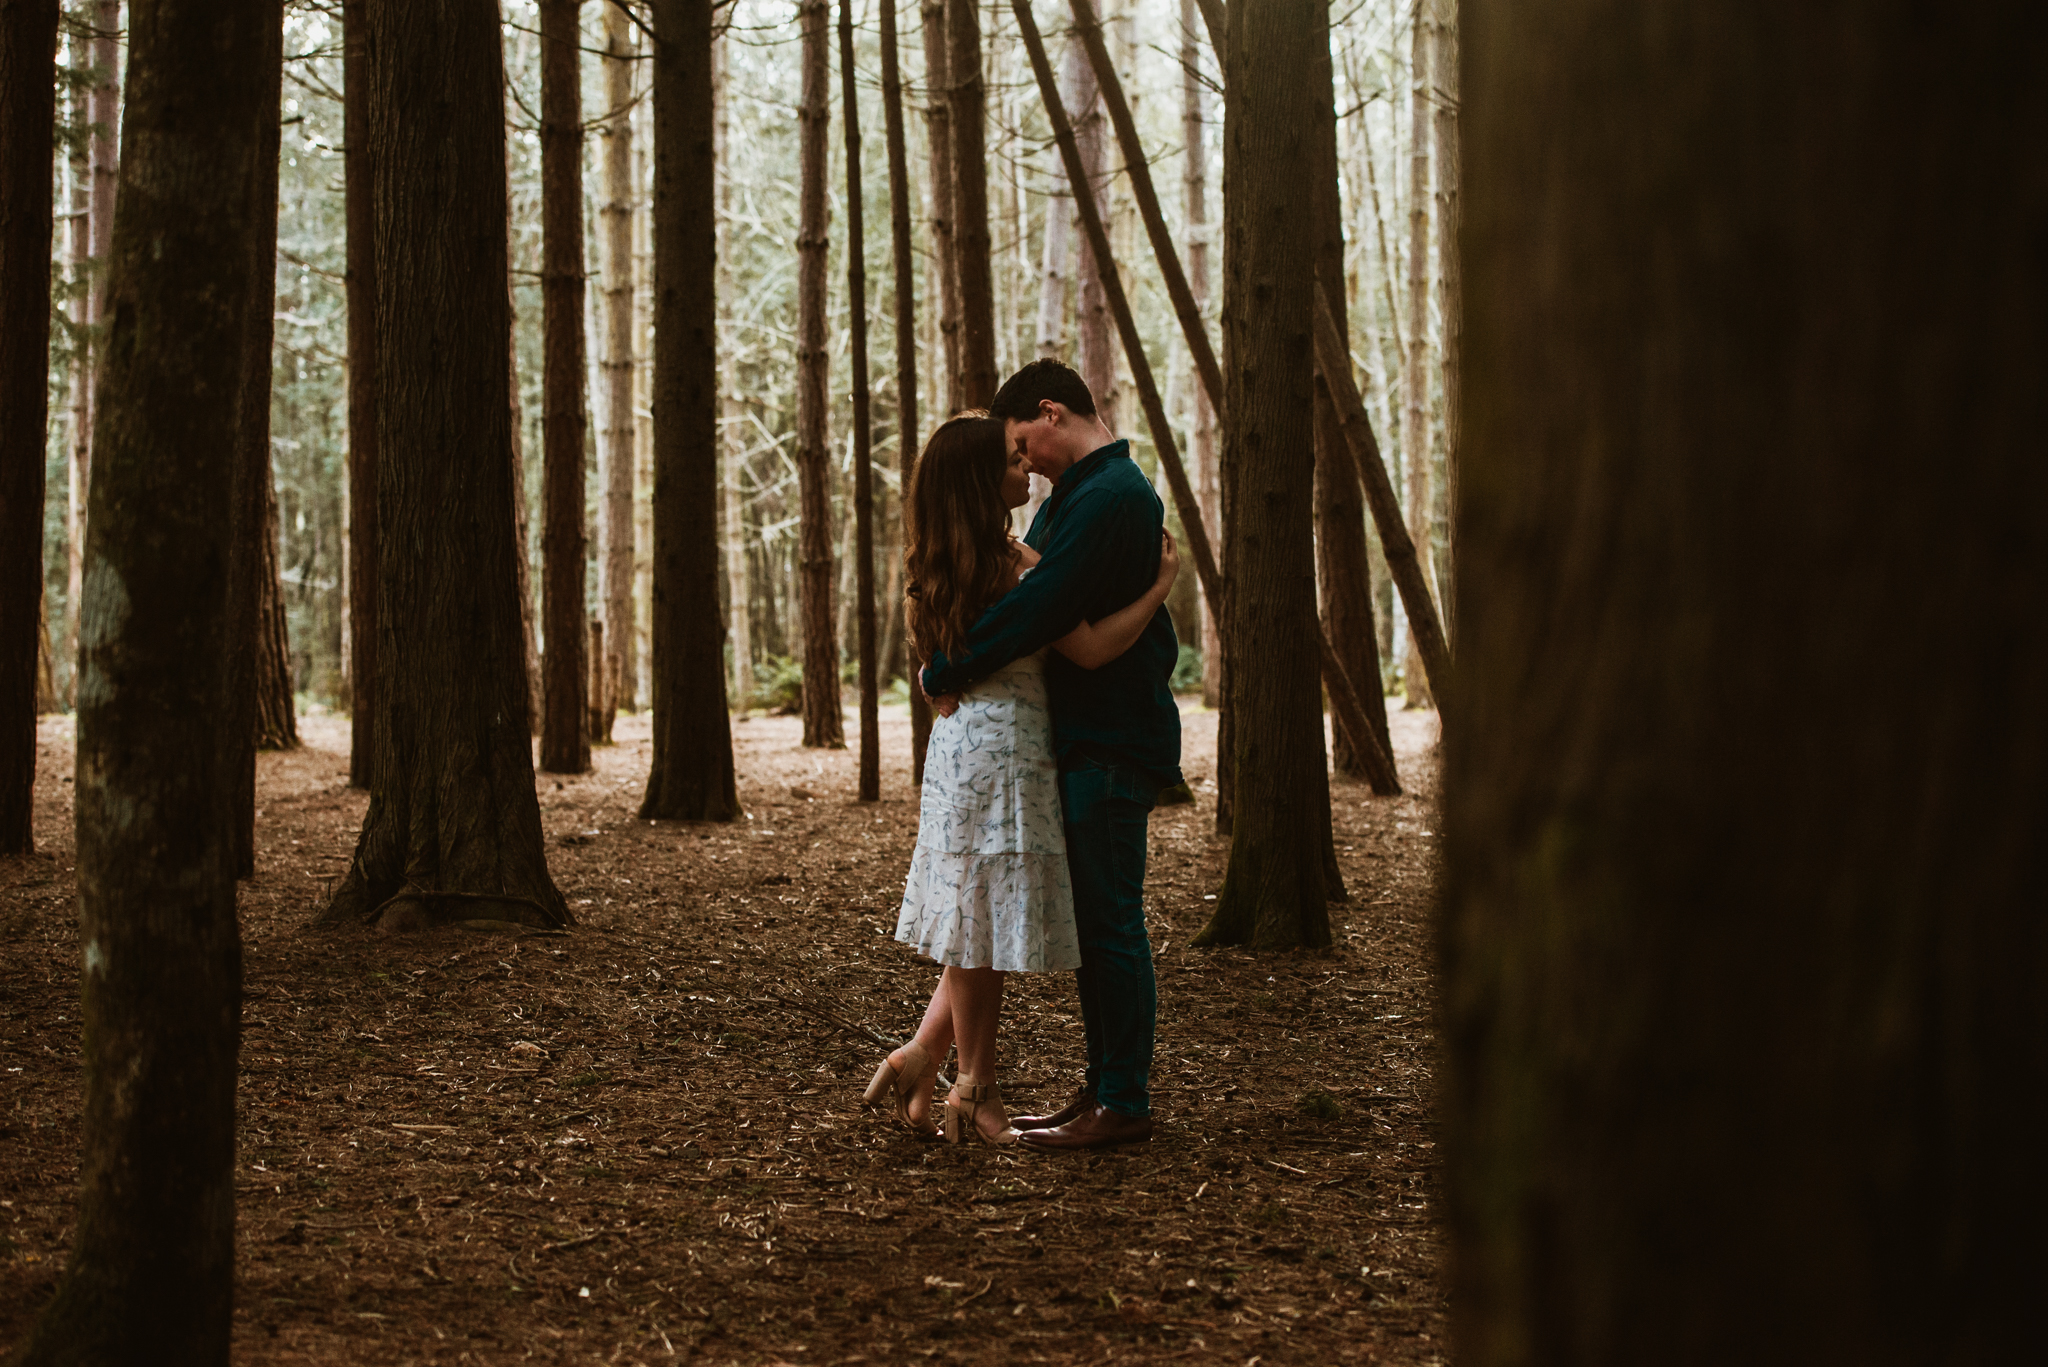 launceston couples photographer-10.jpg